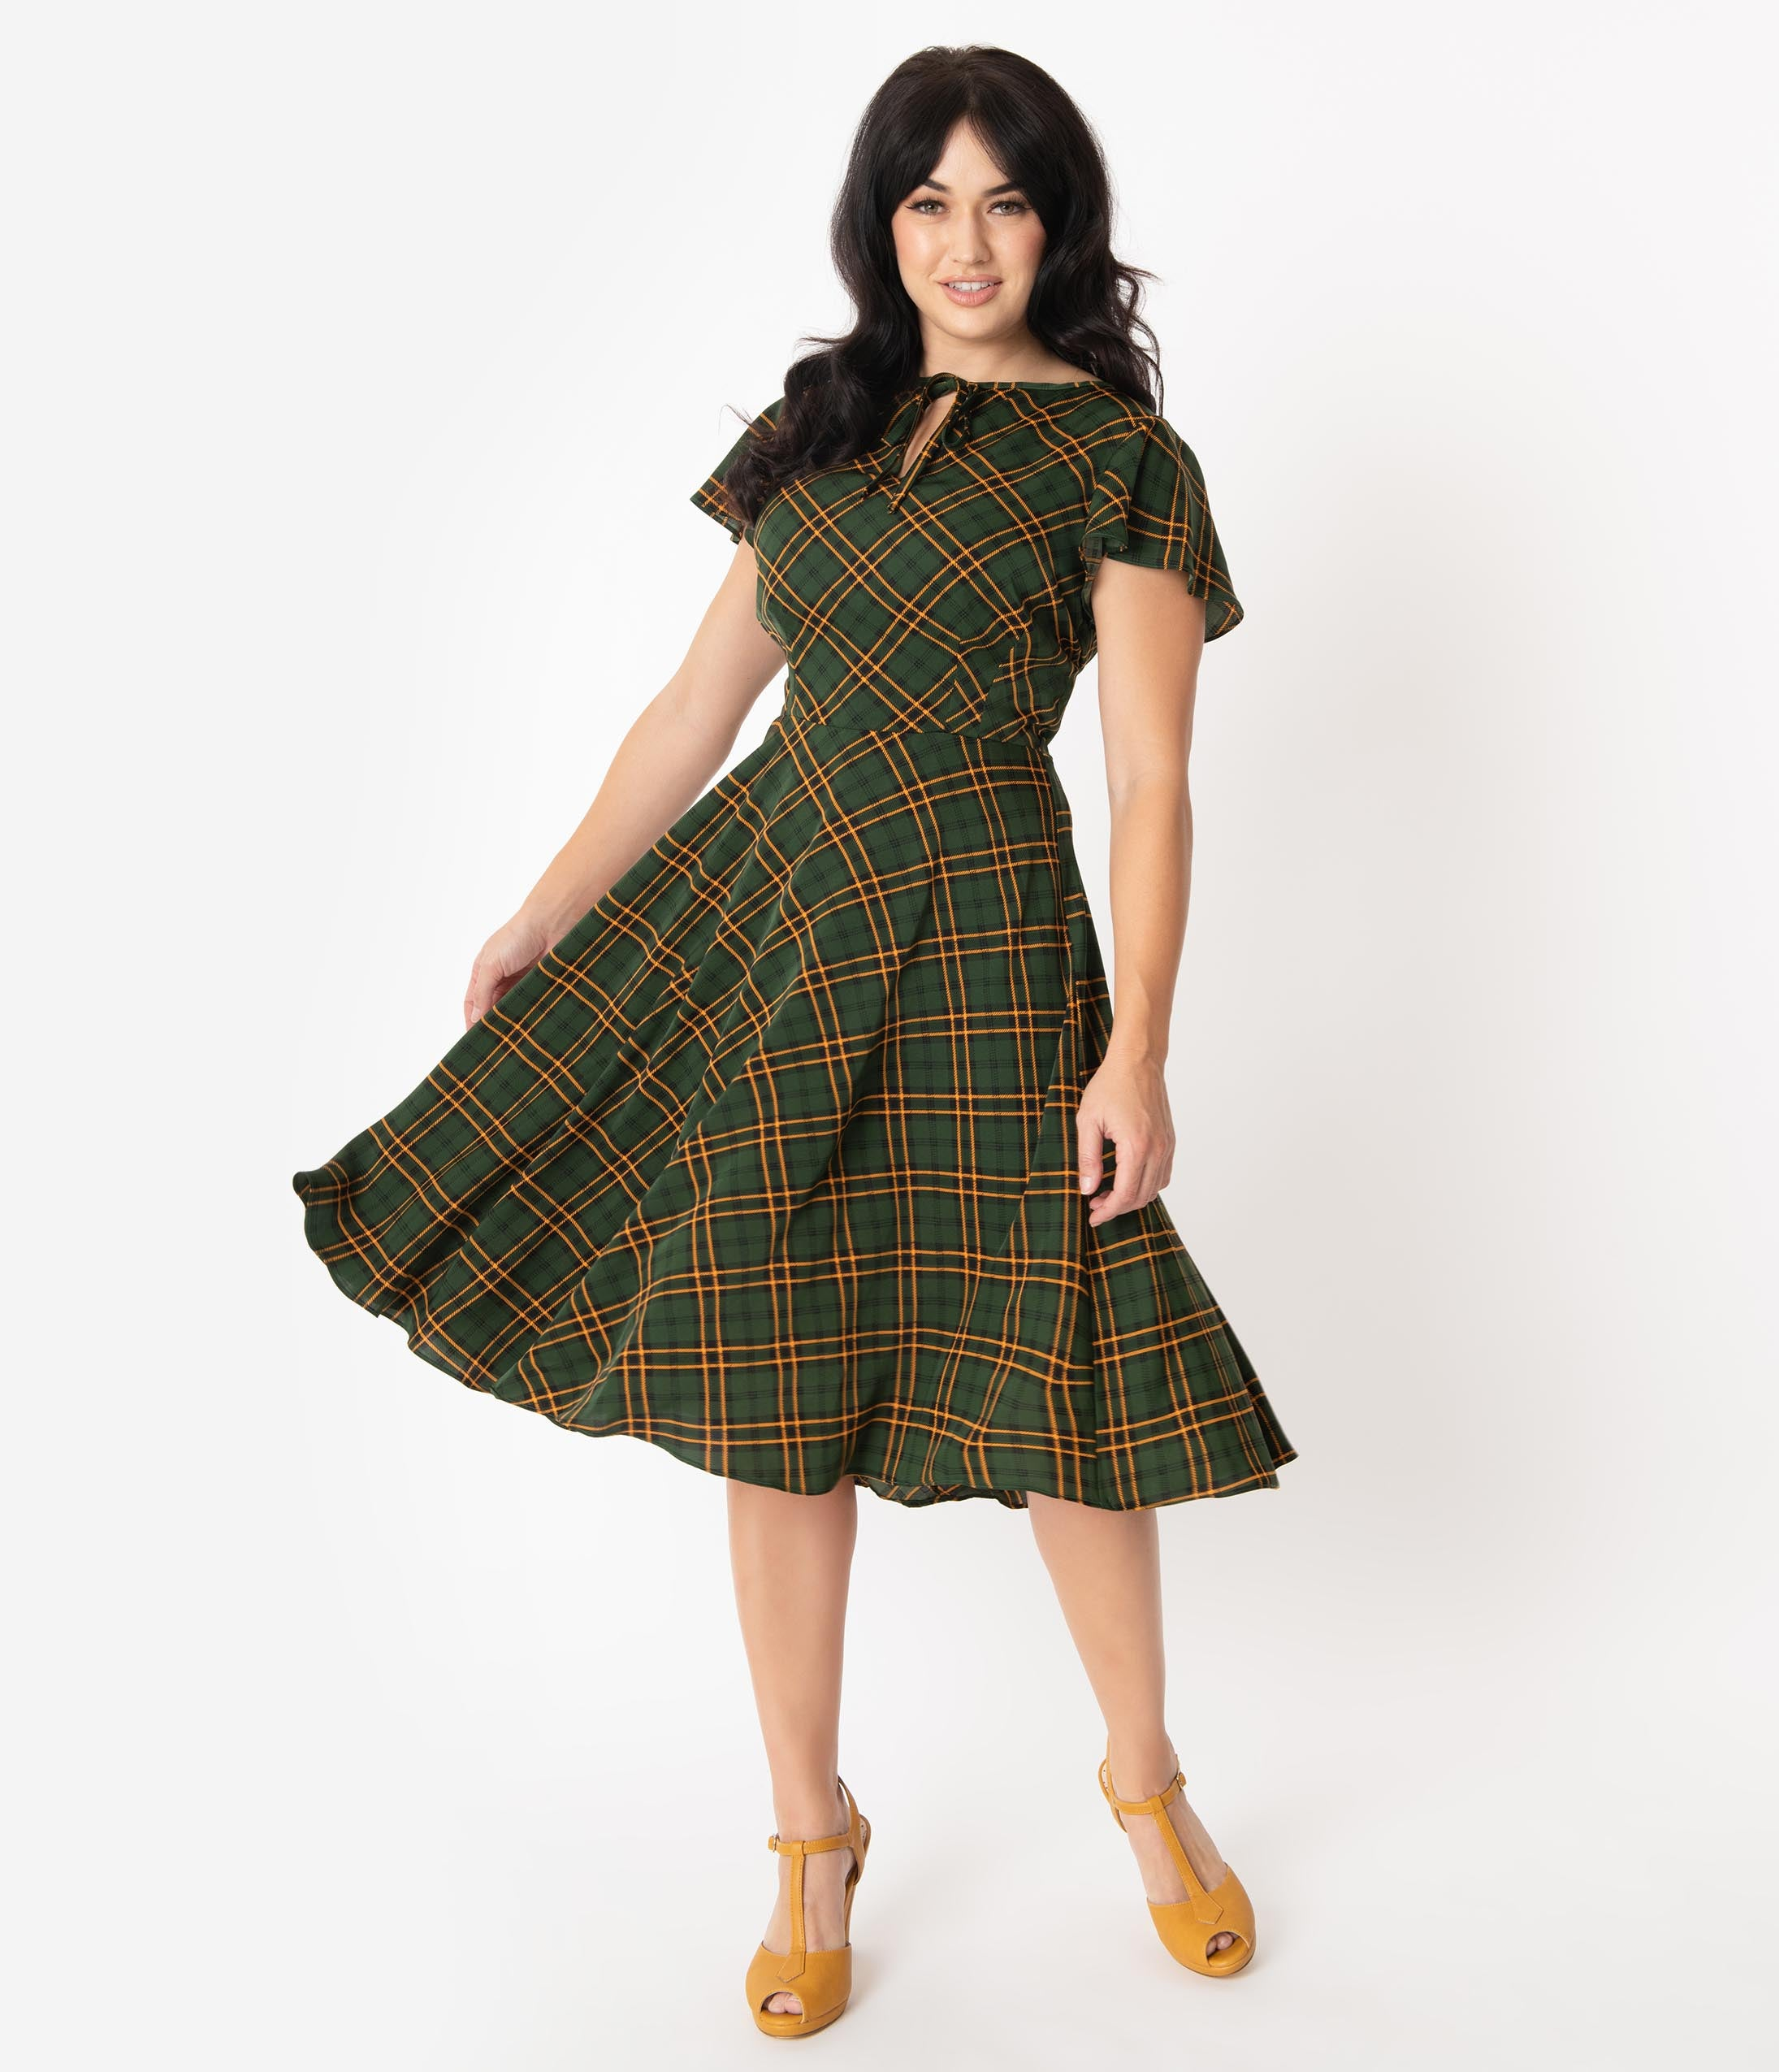 1940s Day Dress Styles, House Dresses Unique Vintage 1940S Style Green Plaid Formosa Swing Dress $98.00 AT vintagedancer.com